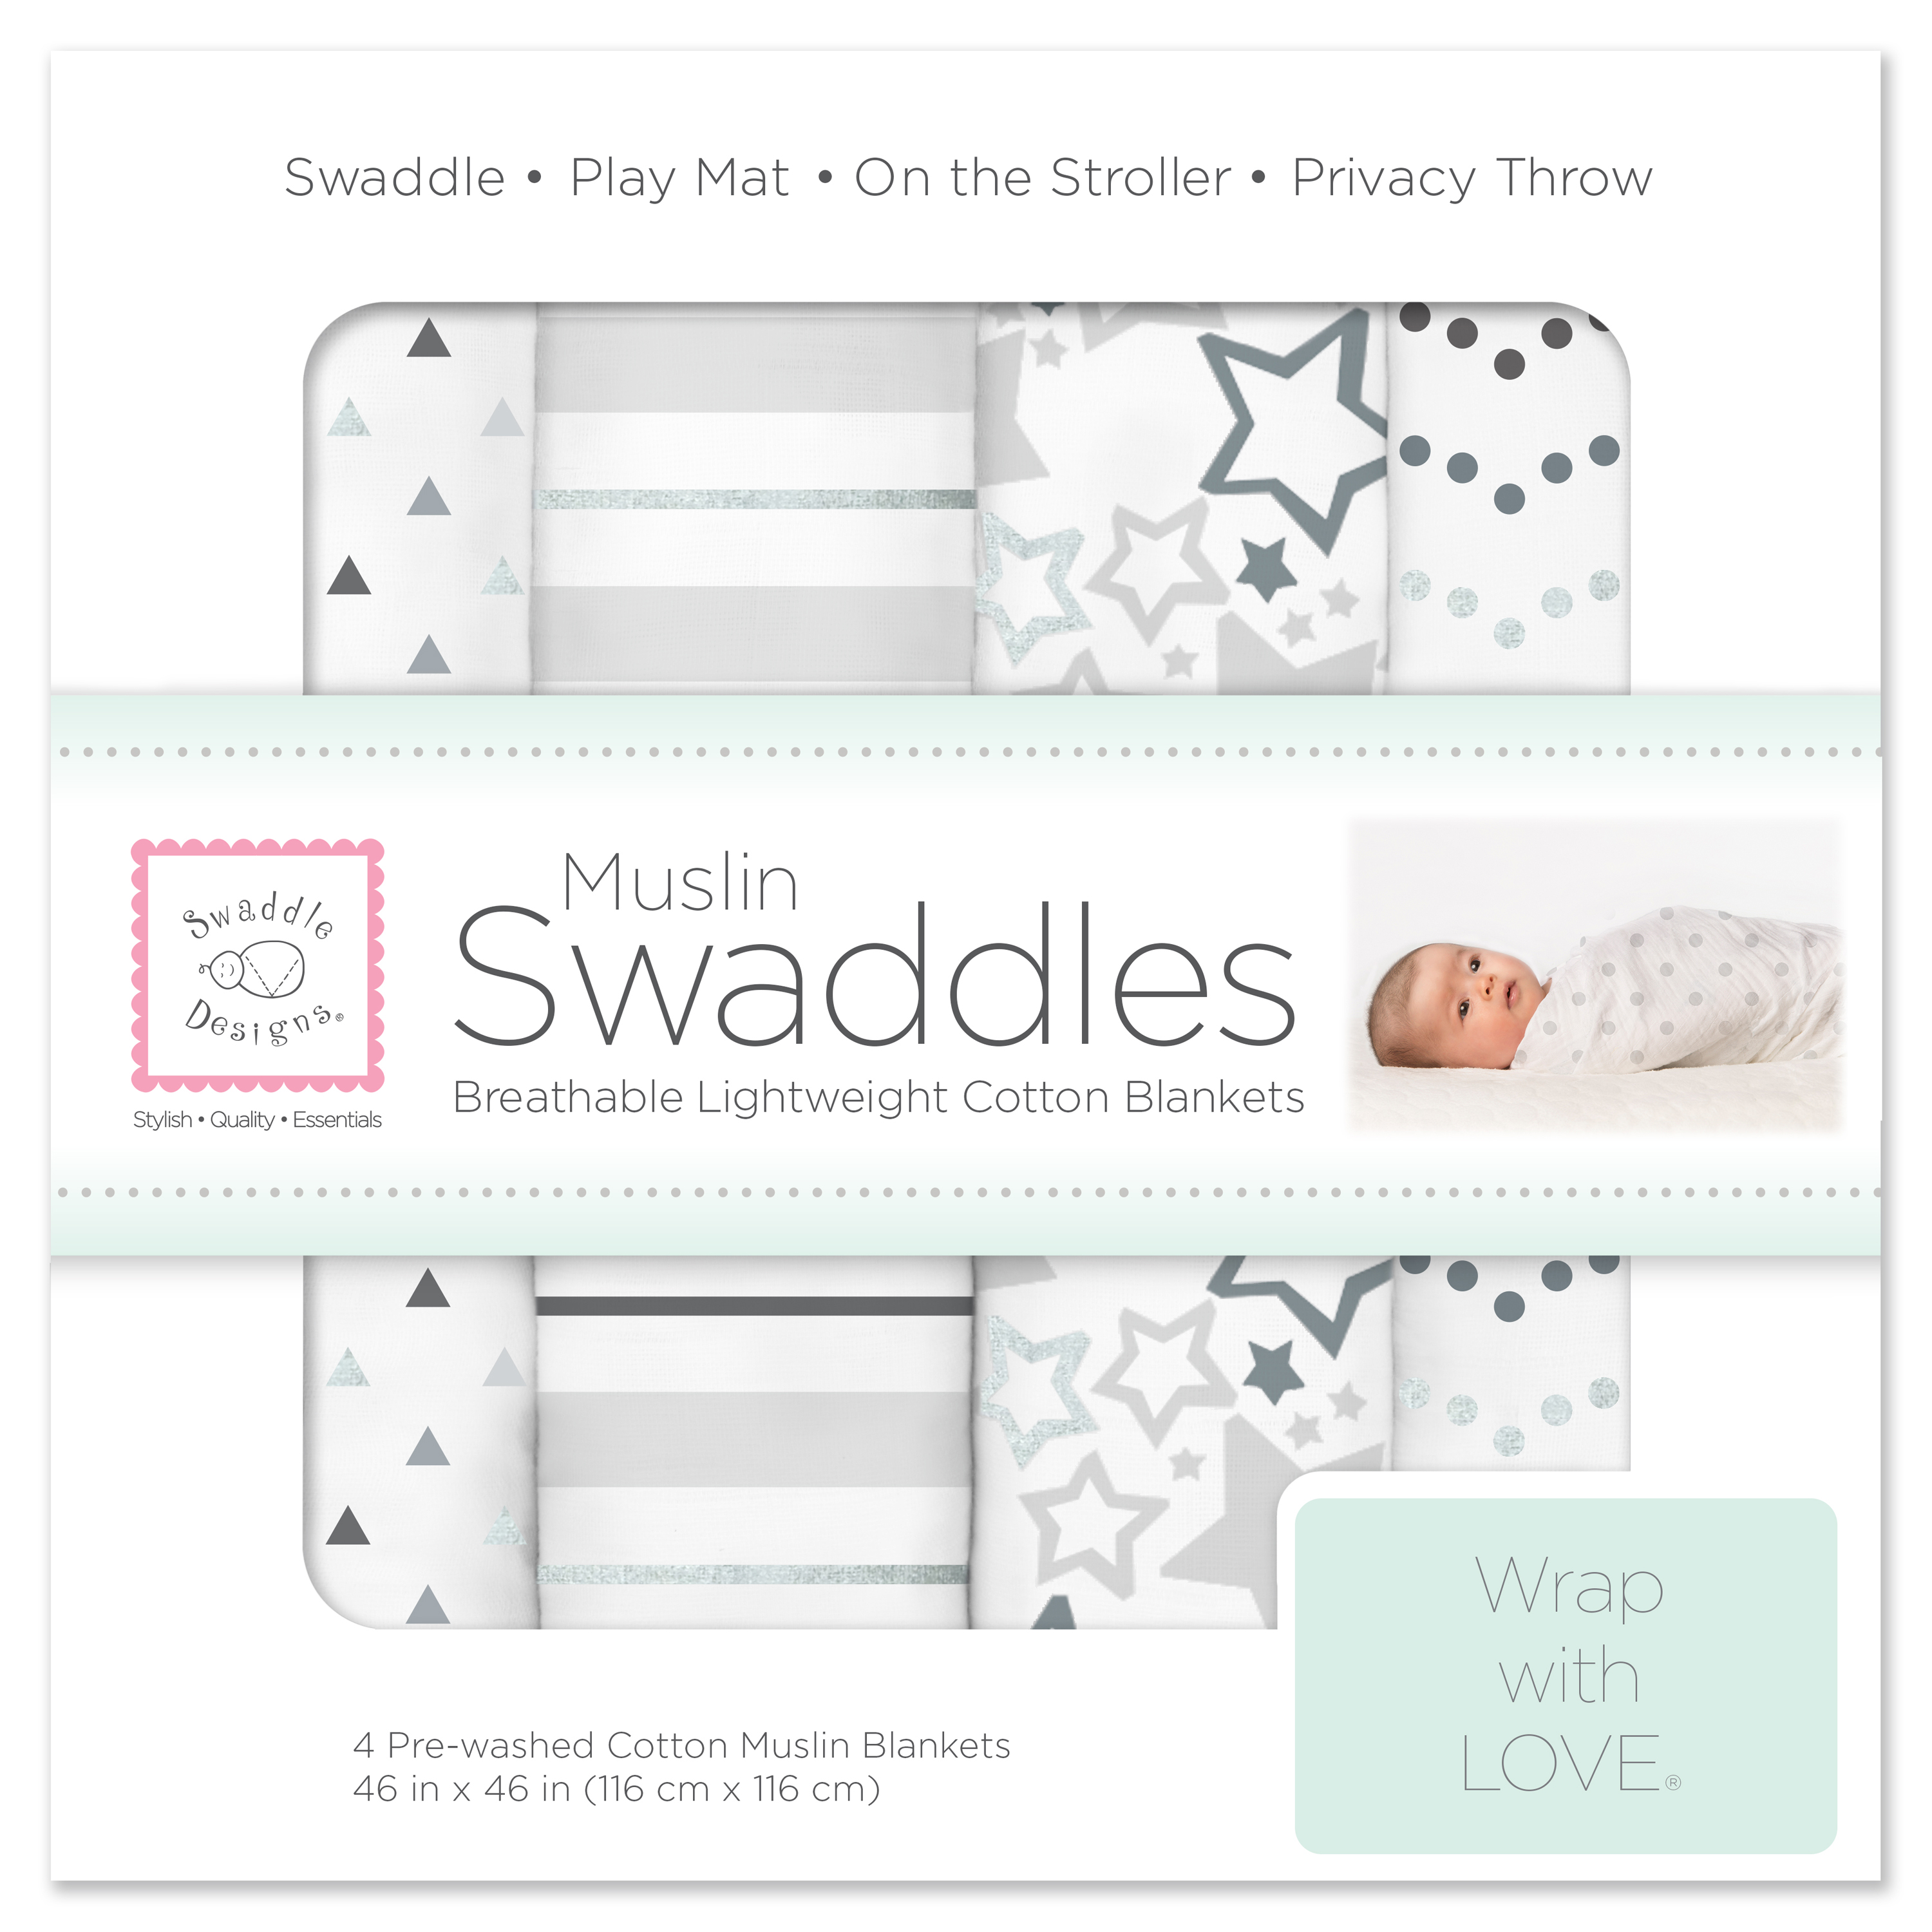 SwaddleDesigns X-Large Cotton Muslin Swaddle Blankets, Set of 4, Starshine Shimmer, Sterling